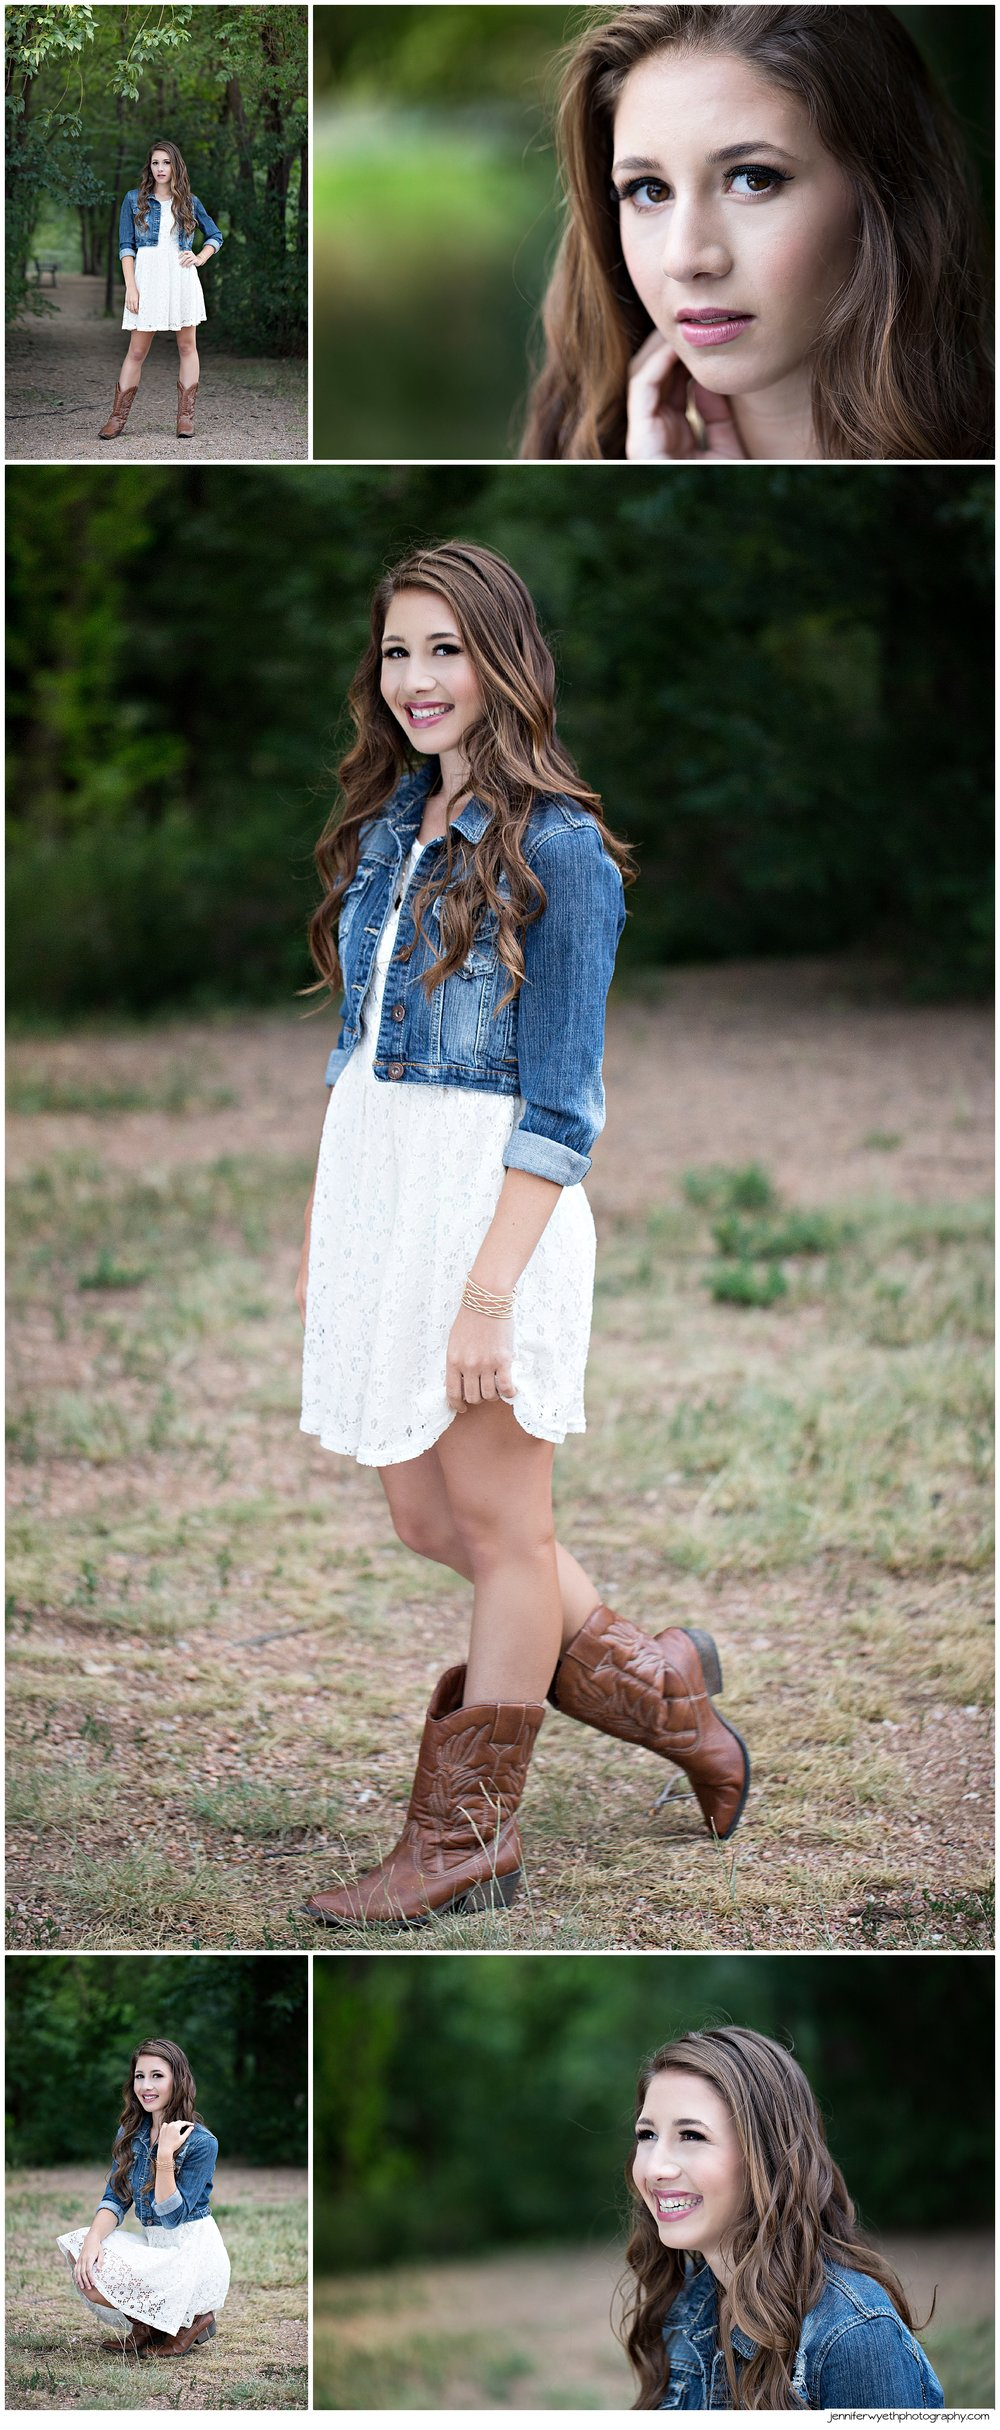 Jennifer-Wyeth-photography-senior-pictures-colorado-springs-photographer_0209.jpg